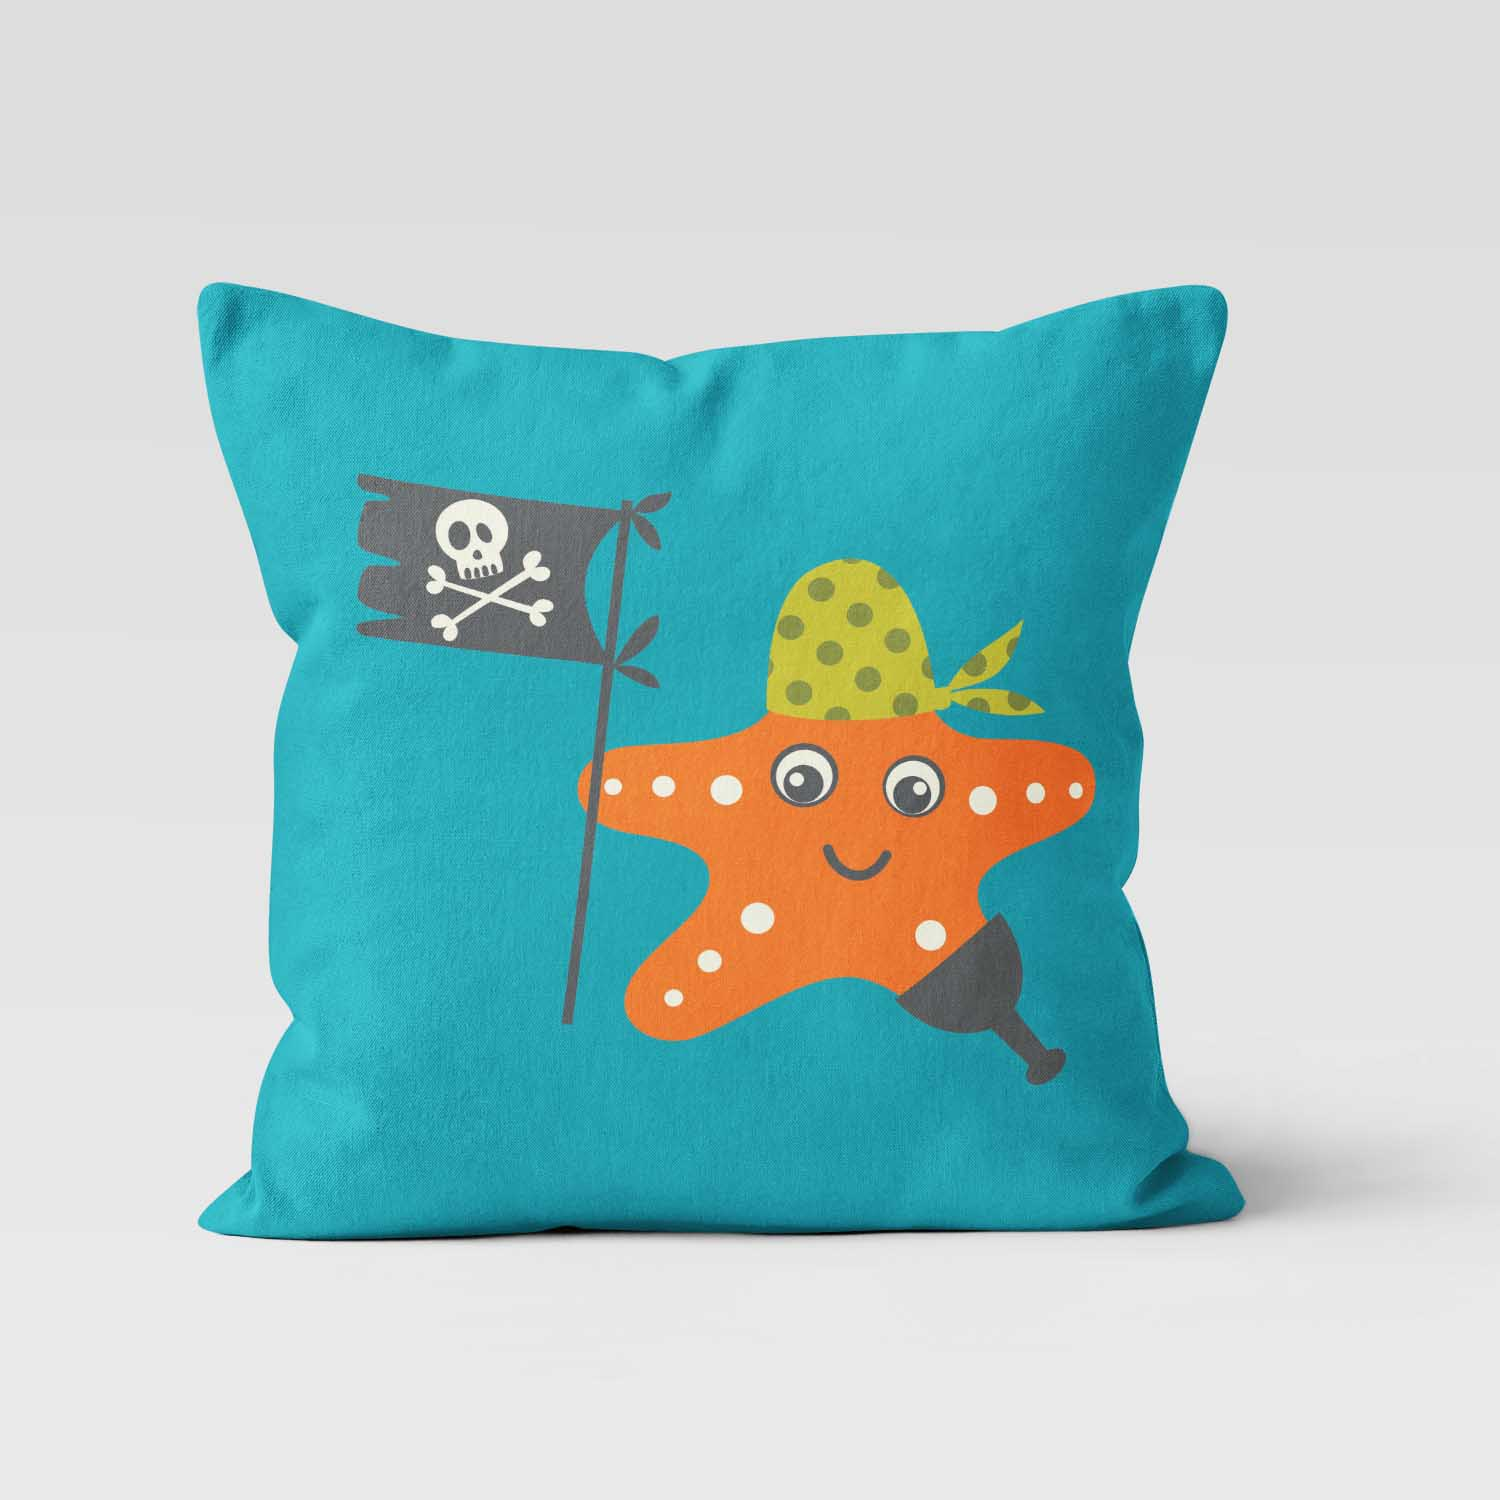 PKTP00006-AhoyMateyPirateAdventure-PILLOW1 Ahoy Matey! Pirate Adventure Starfish Boys Kids Accent Throw Pillow Room Decor Accessories by Pickleberry Kids